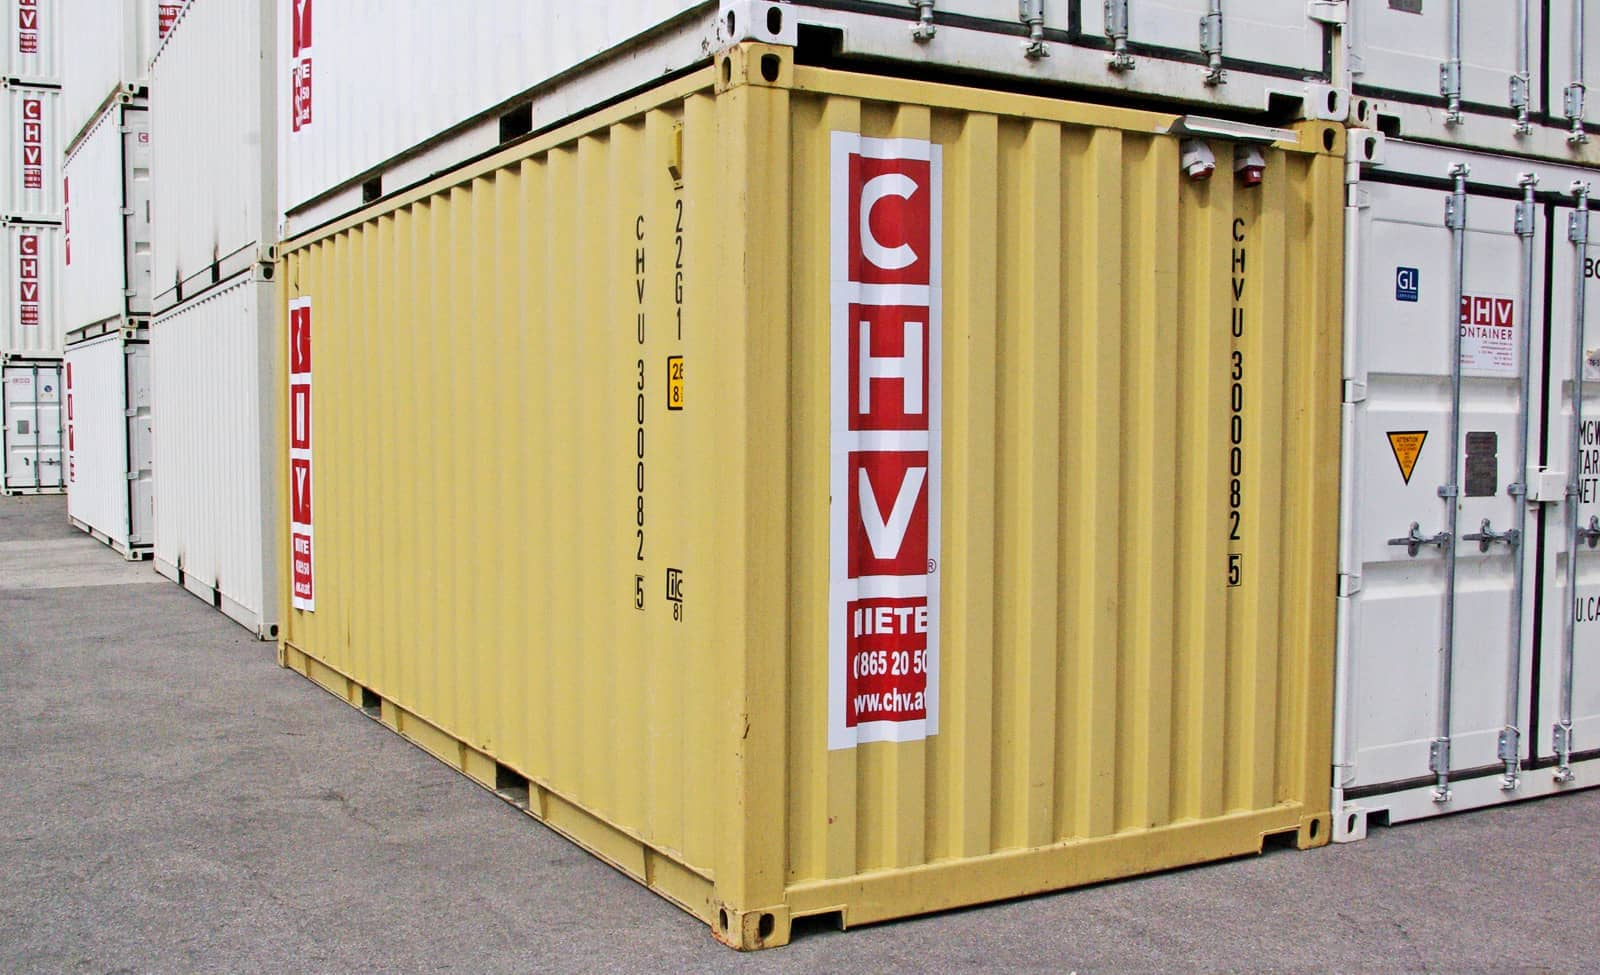 Seecontainer 20ft Used Shipping Container With Electrical System - Chv : Chv